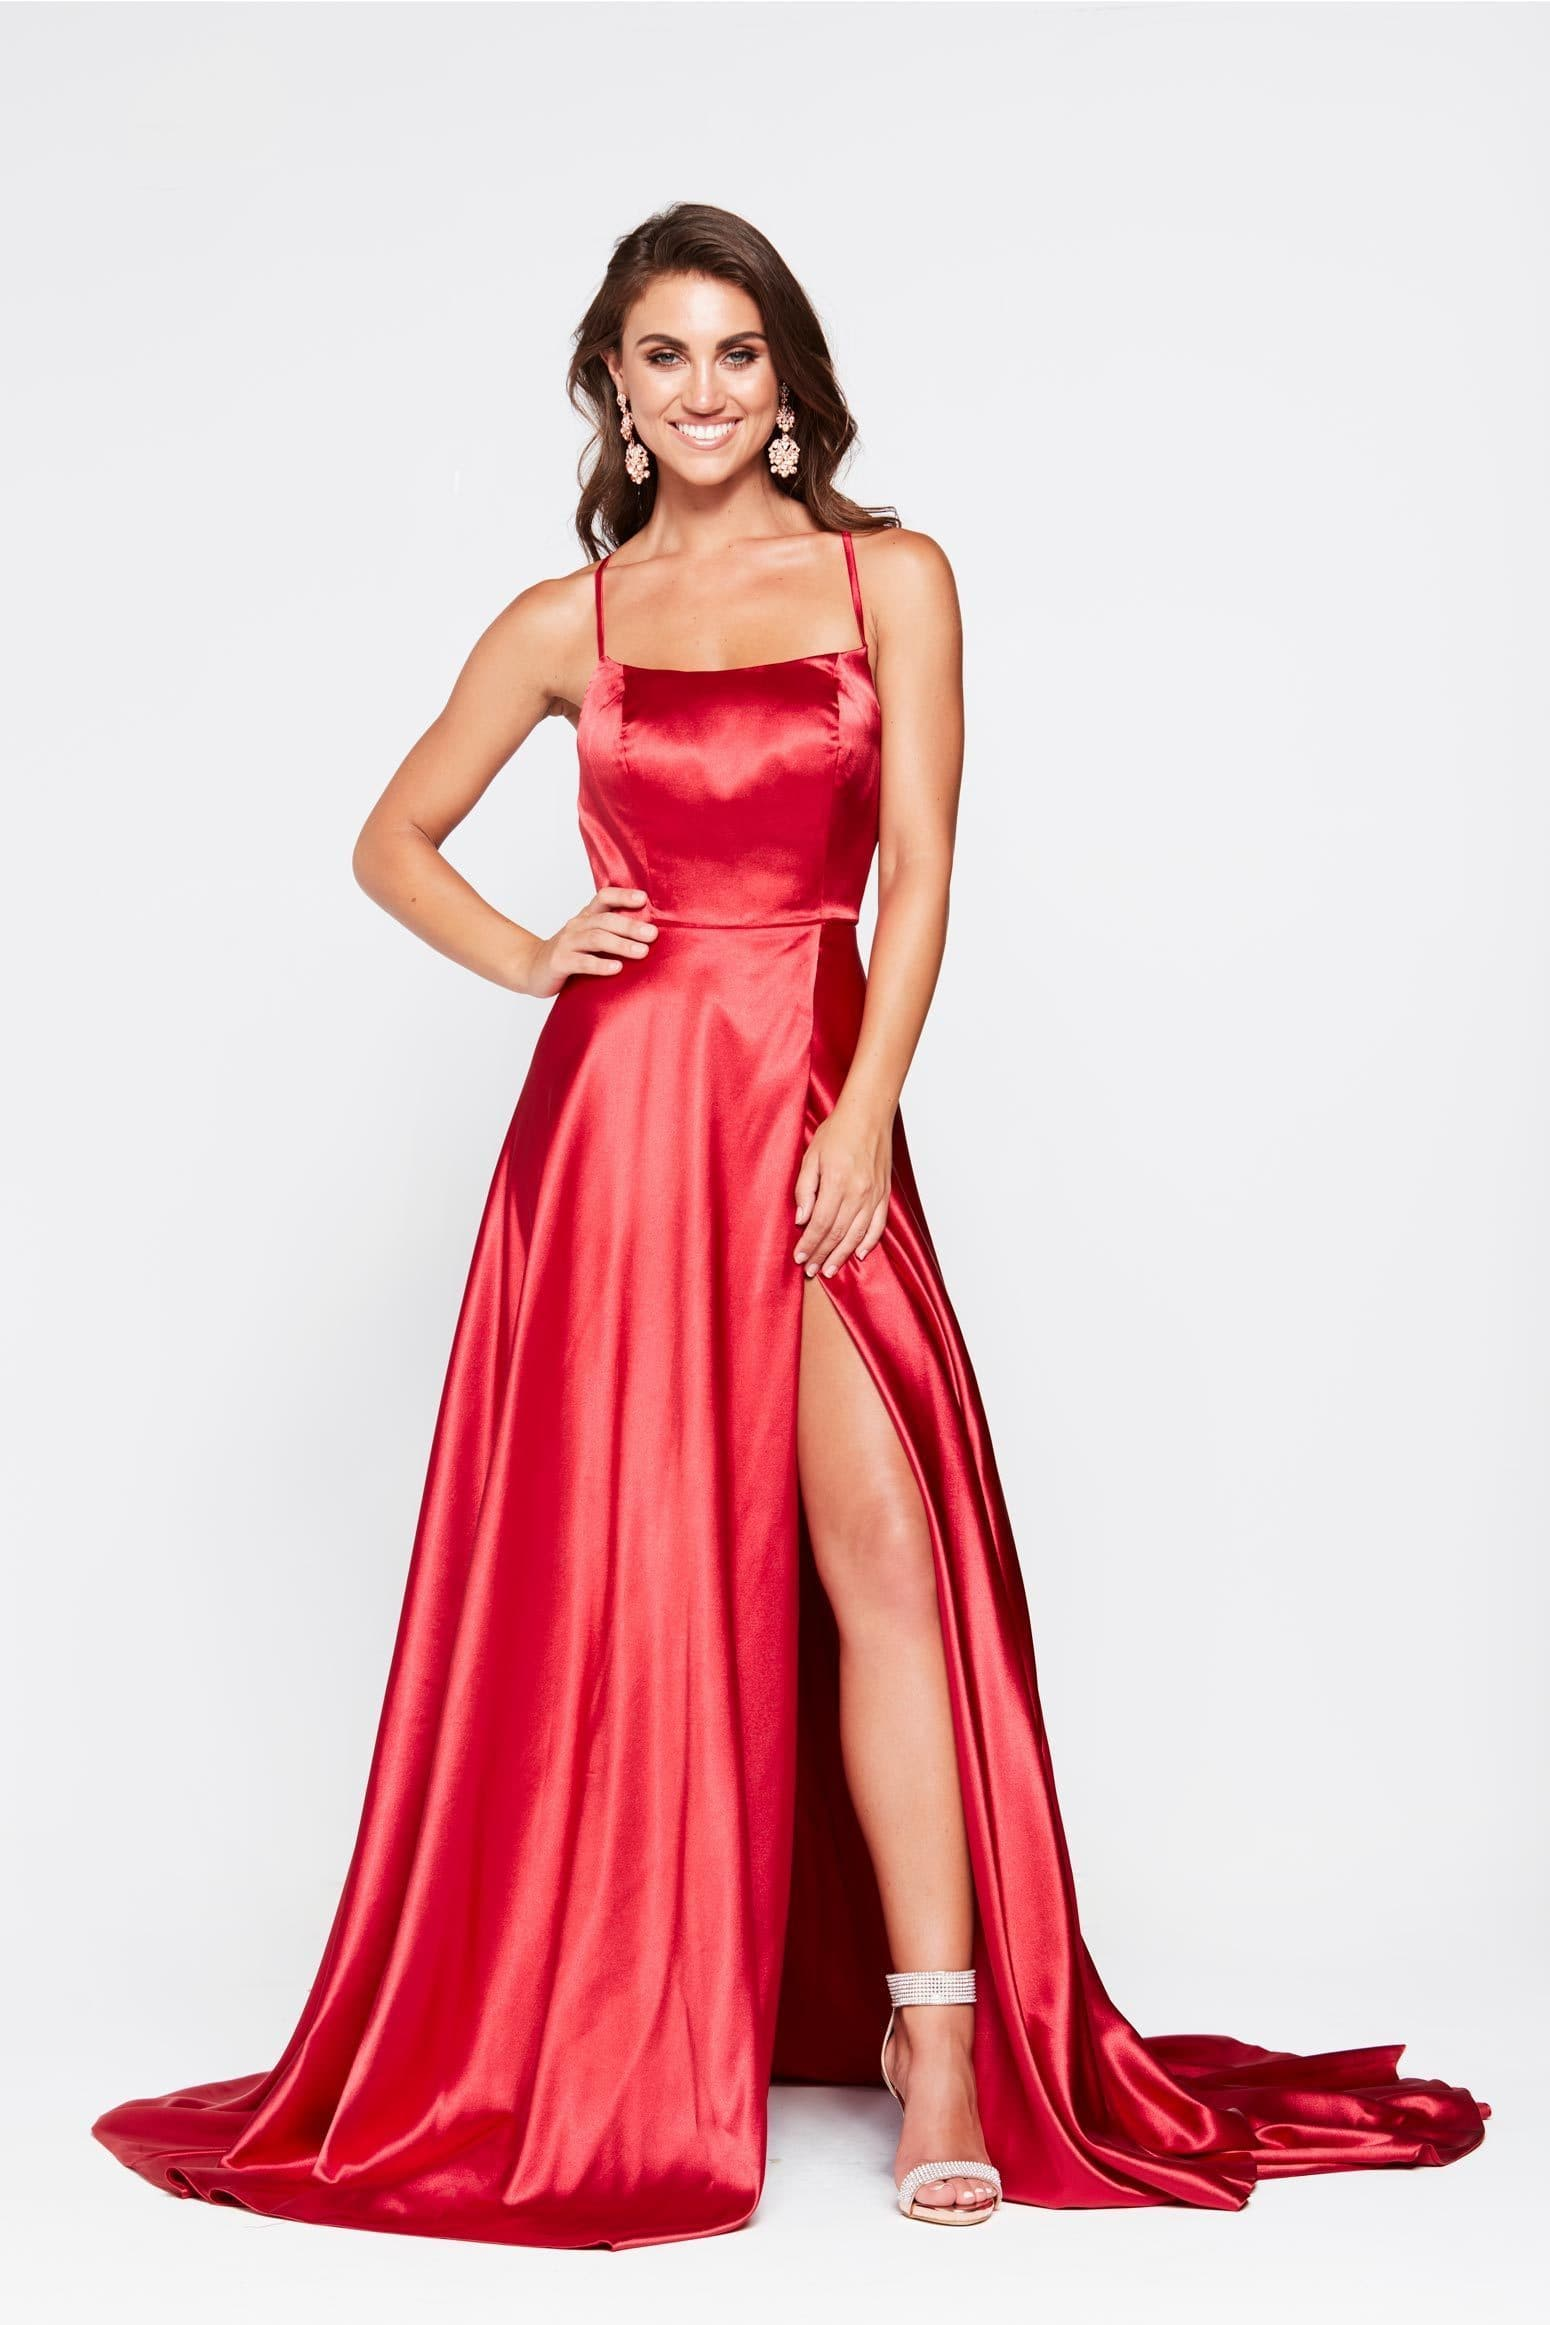 A&N Bianca -Red Satin Gown with Side Slit and Lace Up Back